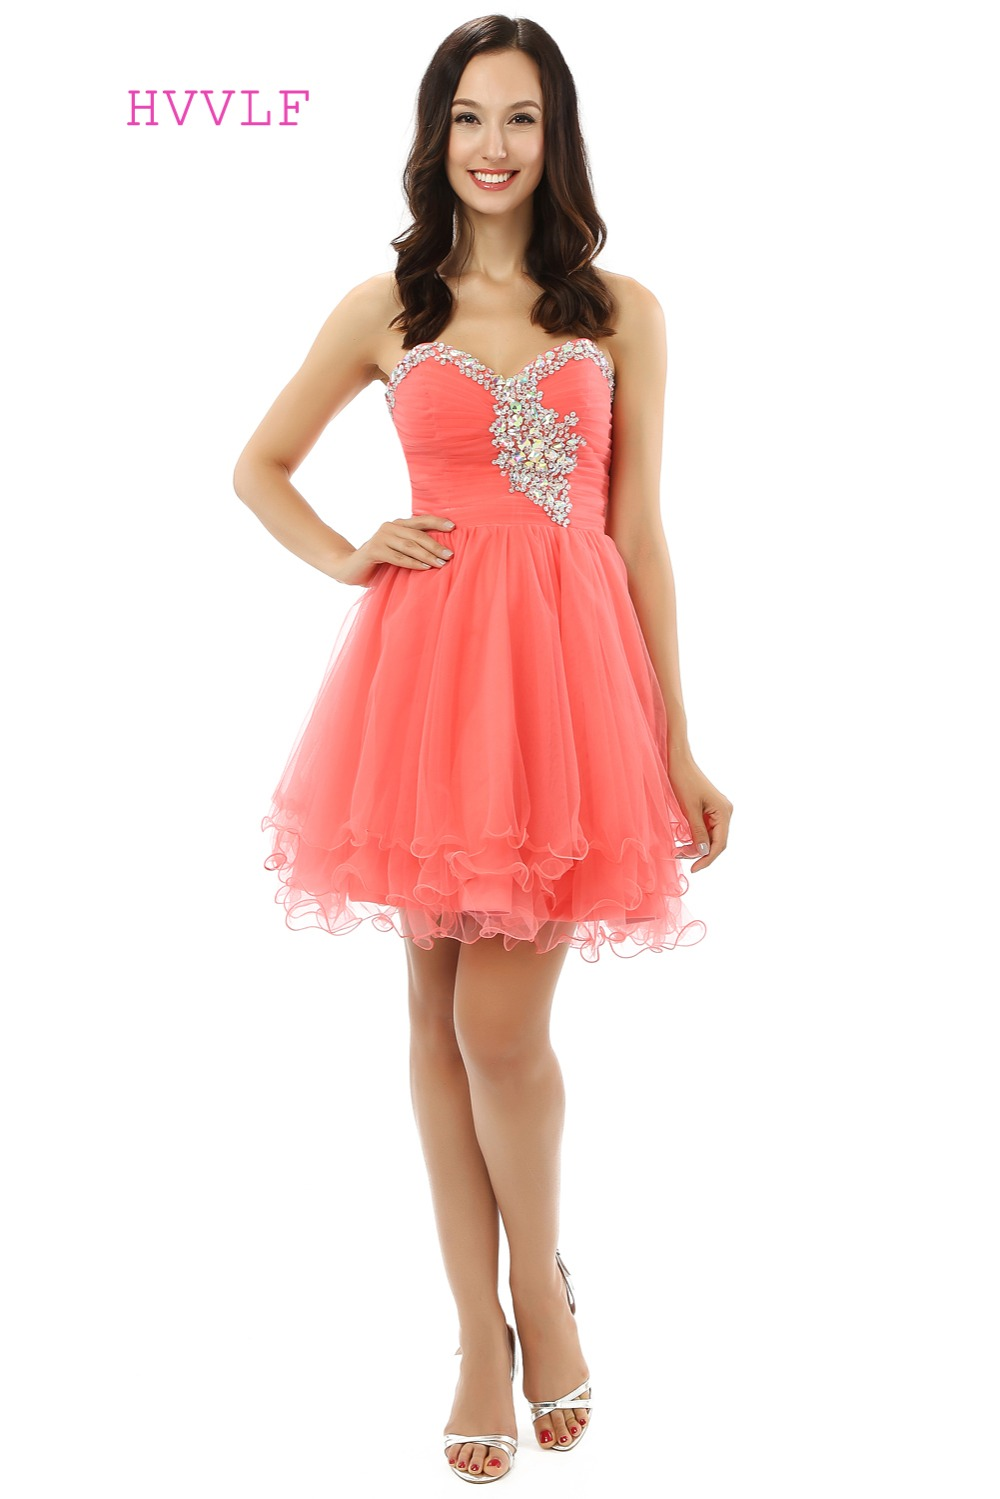 Coral Homecoming Dresses A-line Sweetheart Organza Beaded Crystals Short Mini Sparkly Sweet 16 Cocktail Dresses 2019